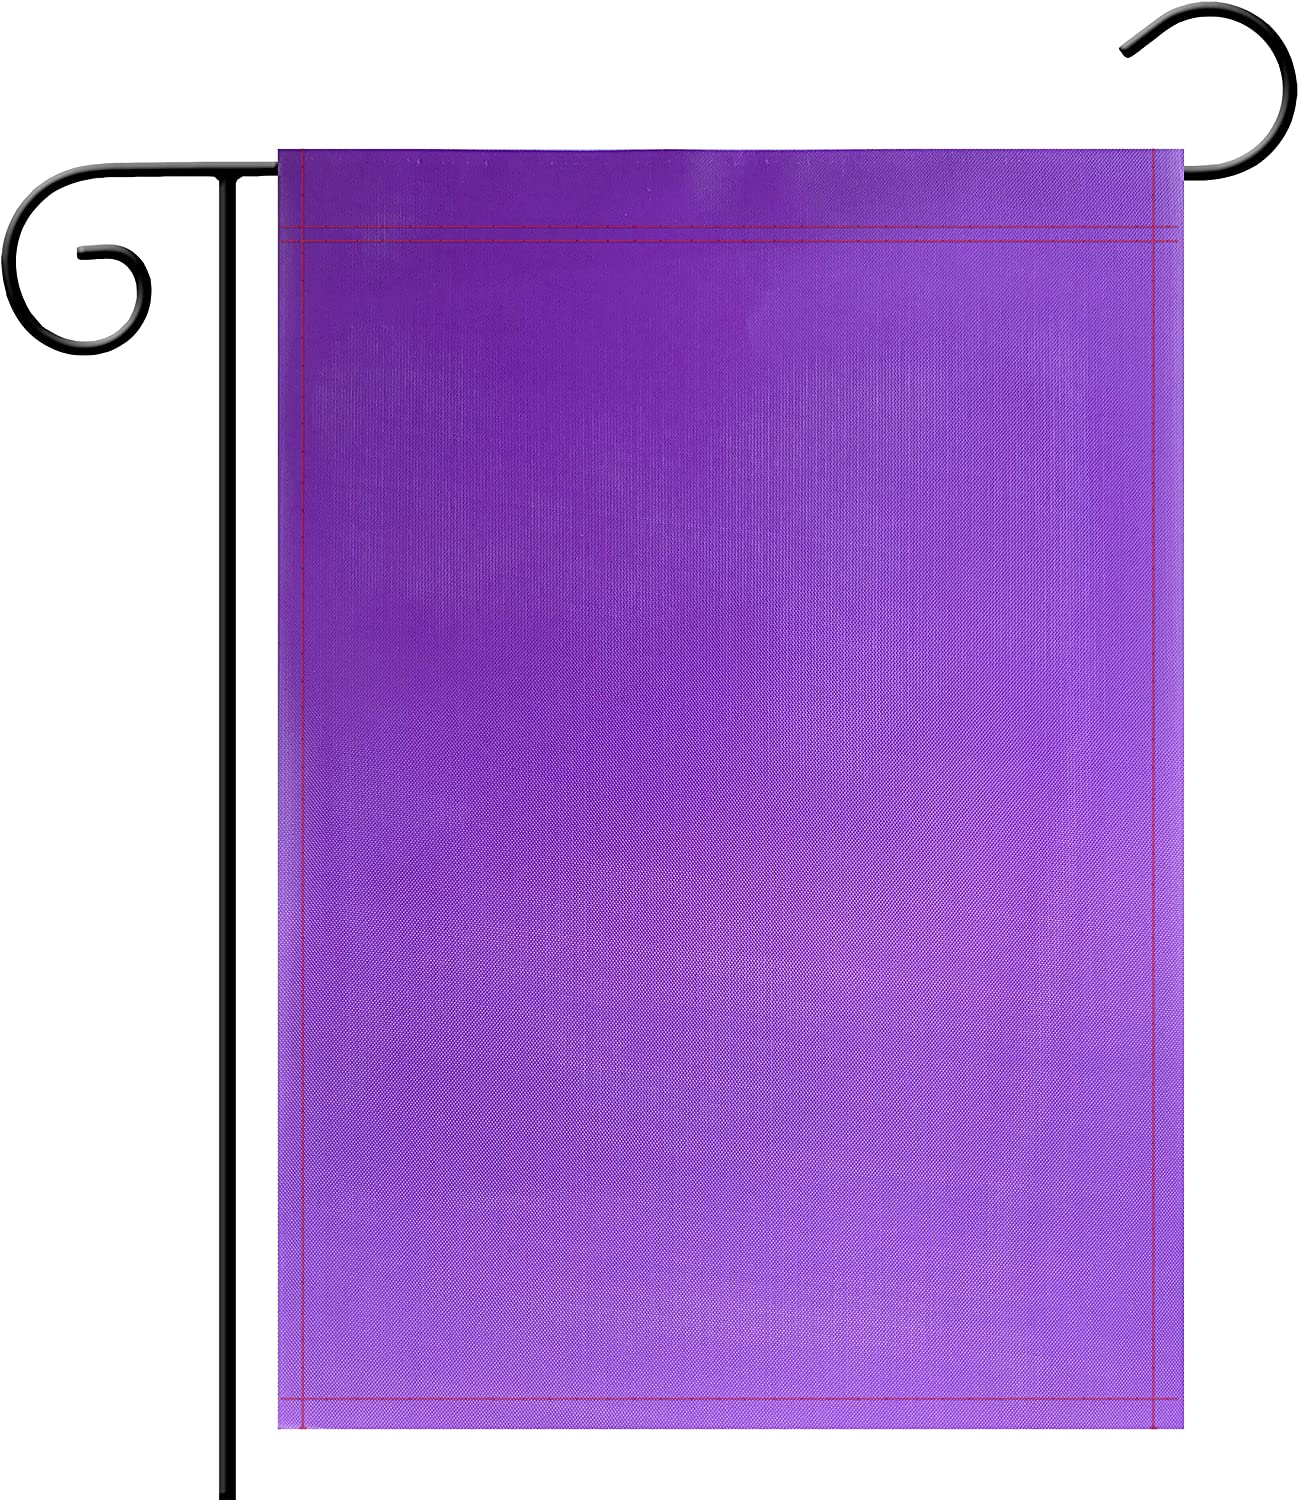 Garden Flag ,Pure Solid Purple Garden Flag Color Flag, Plain Purple Flags,Garden Decoration Flag,Indoor and Outdoor Flags,Party decoration, home decoration, School decoration,DIY,Double-Sided.